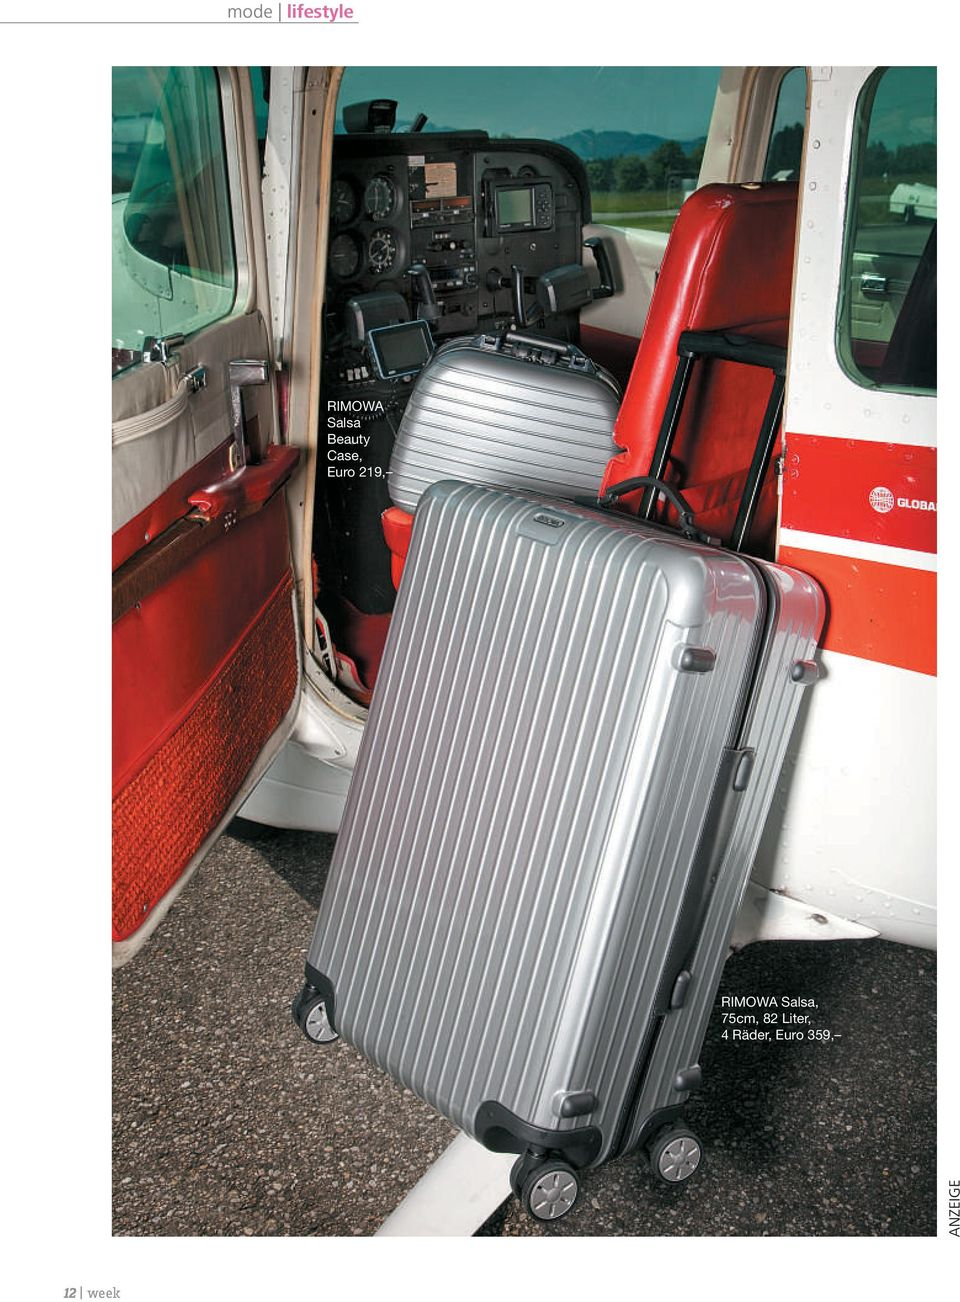 7,95 Hemd, Broadway Fashion, 24,95 RIMOWA Salsa,